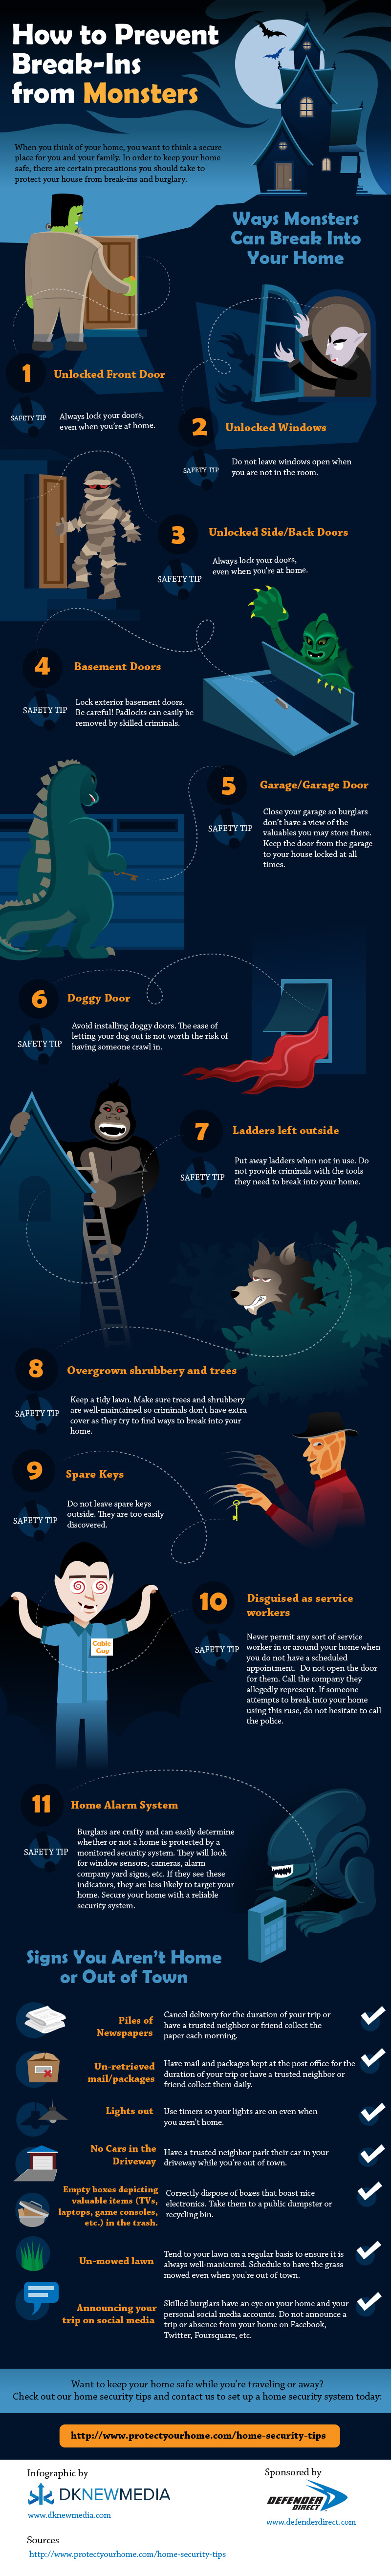 Infographic: How To Prevent Break-Ins From Monsters